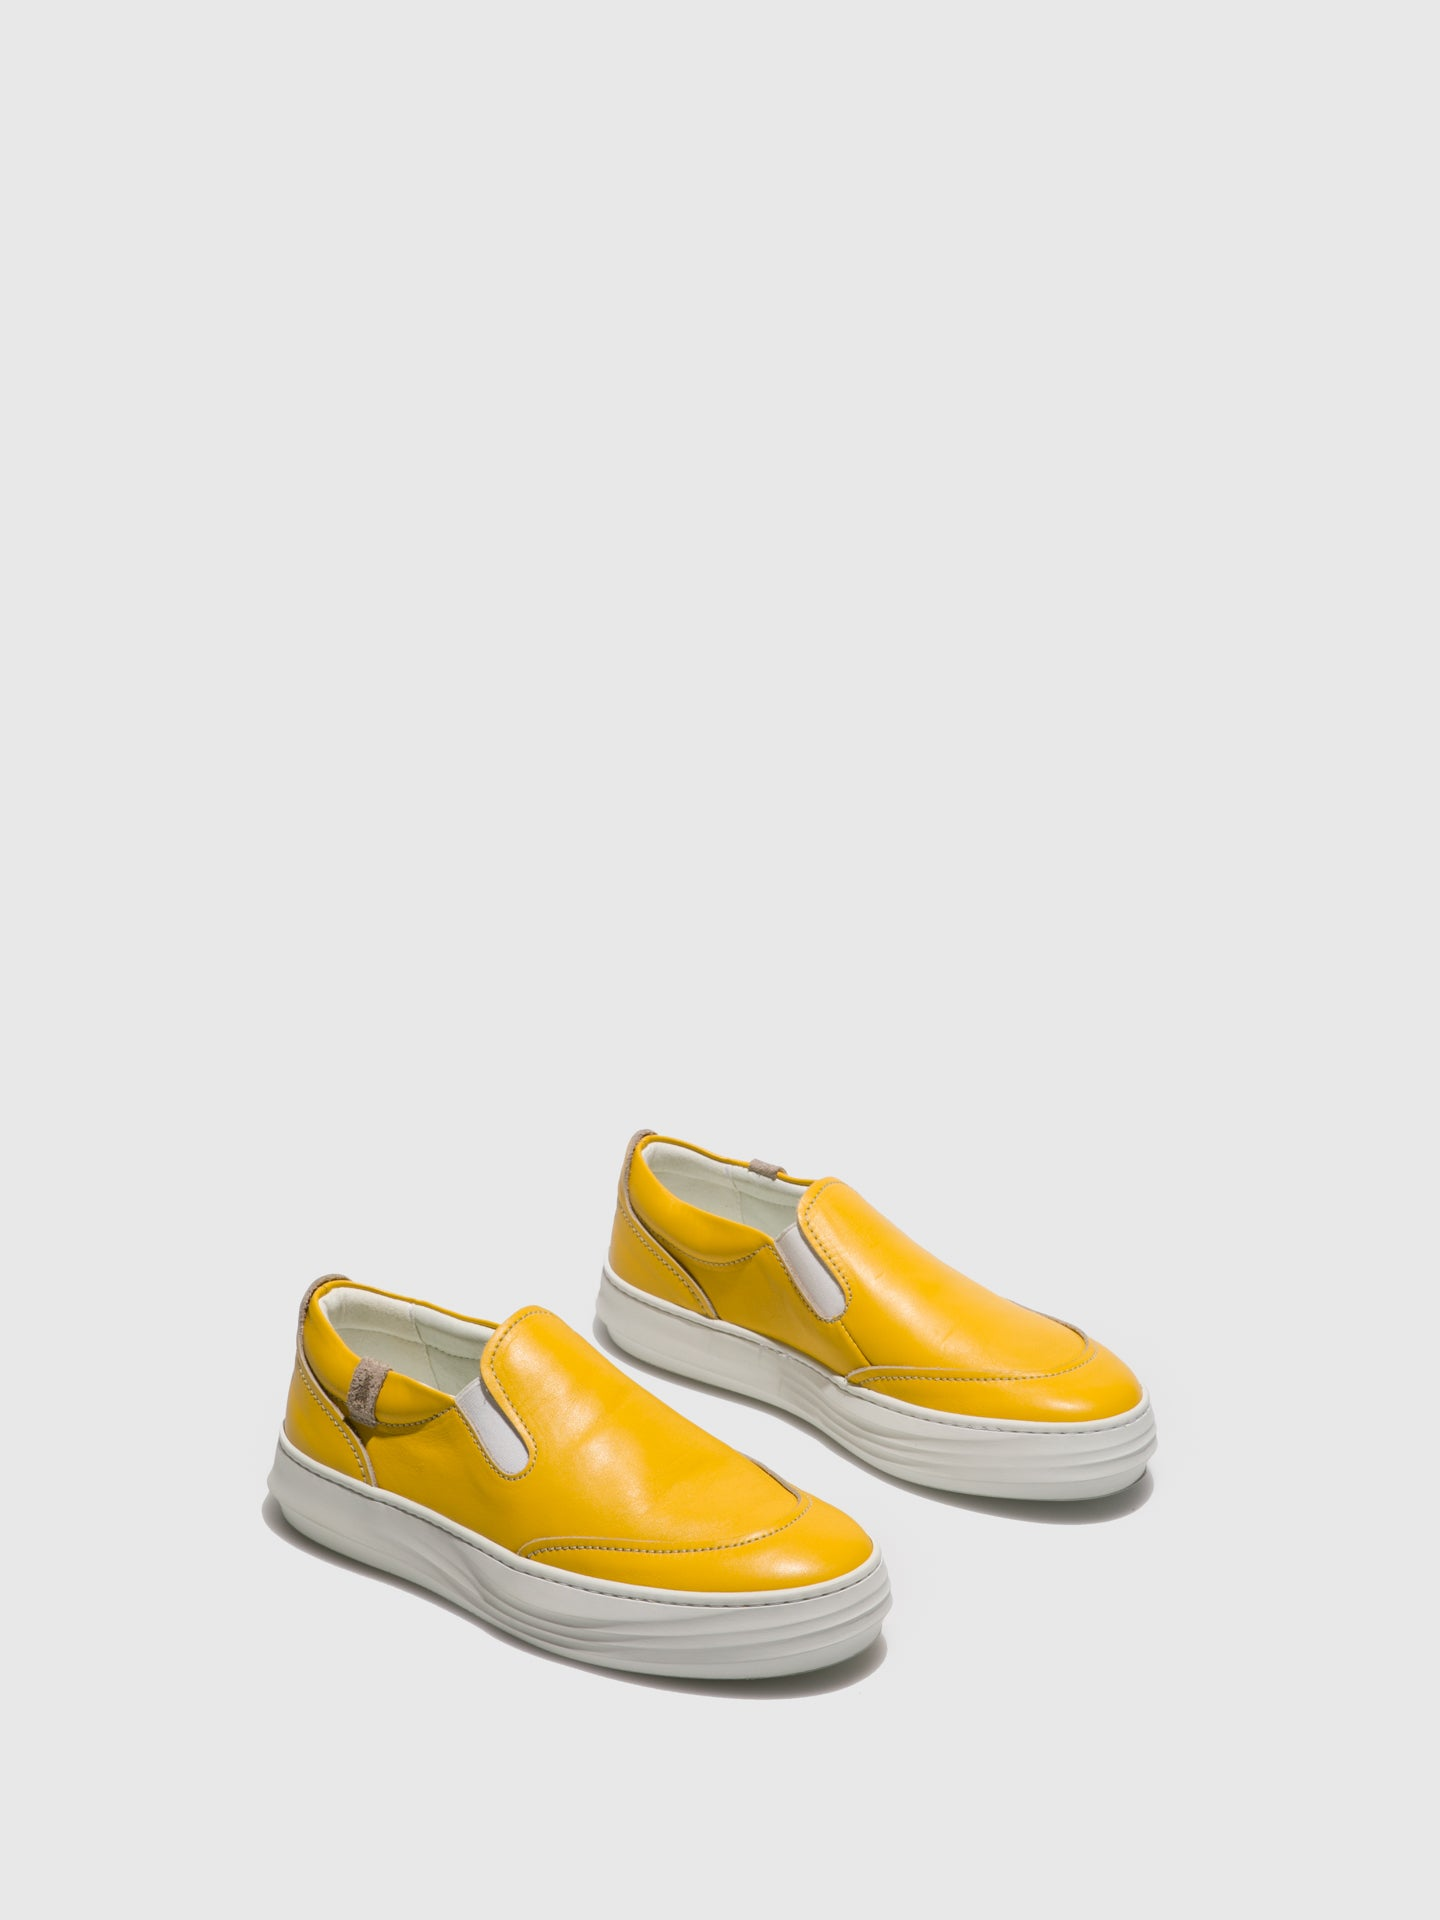 Fly London Yellow Slip-on Shoes